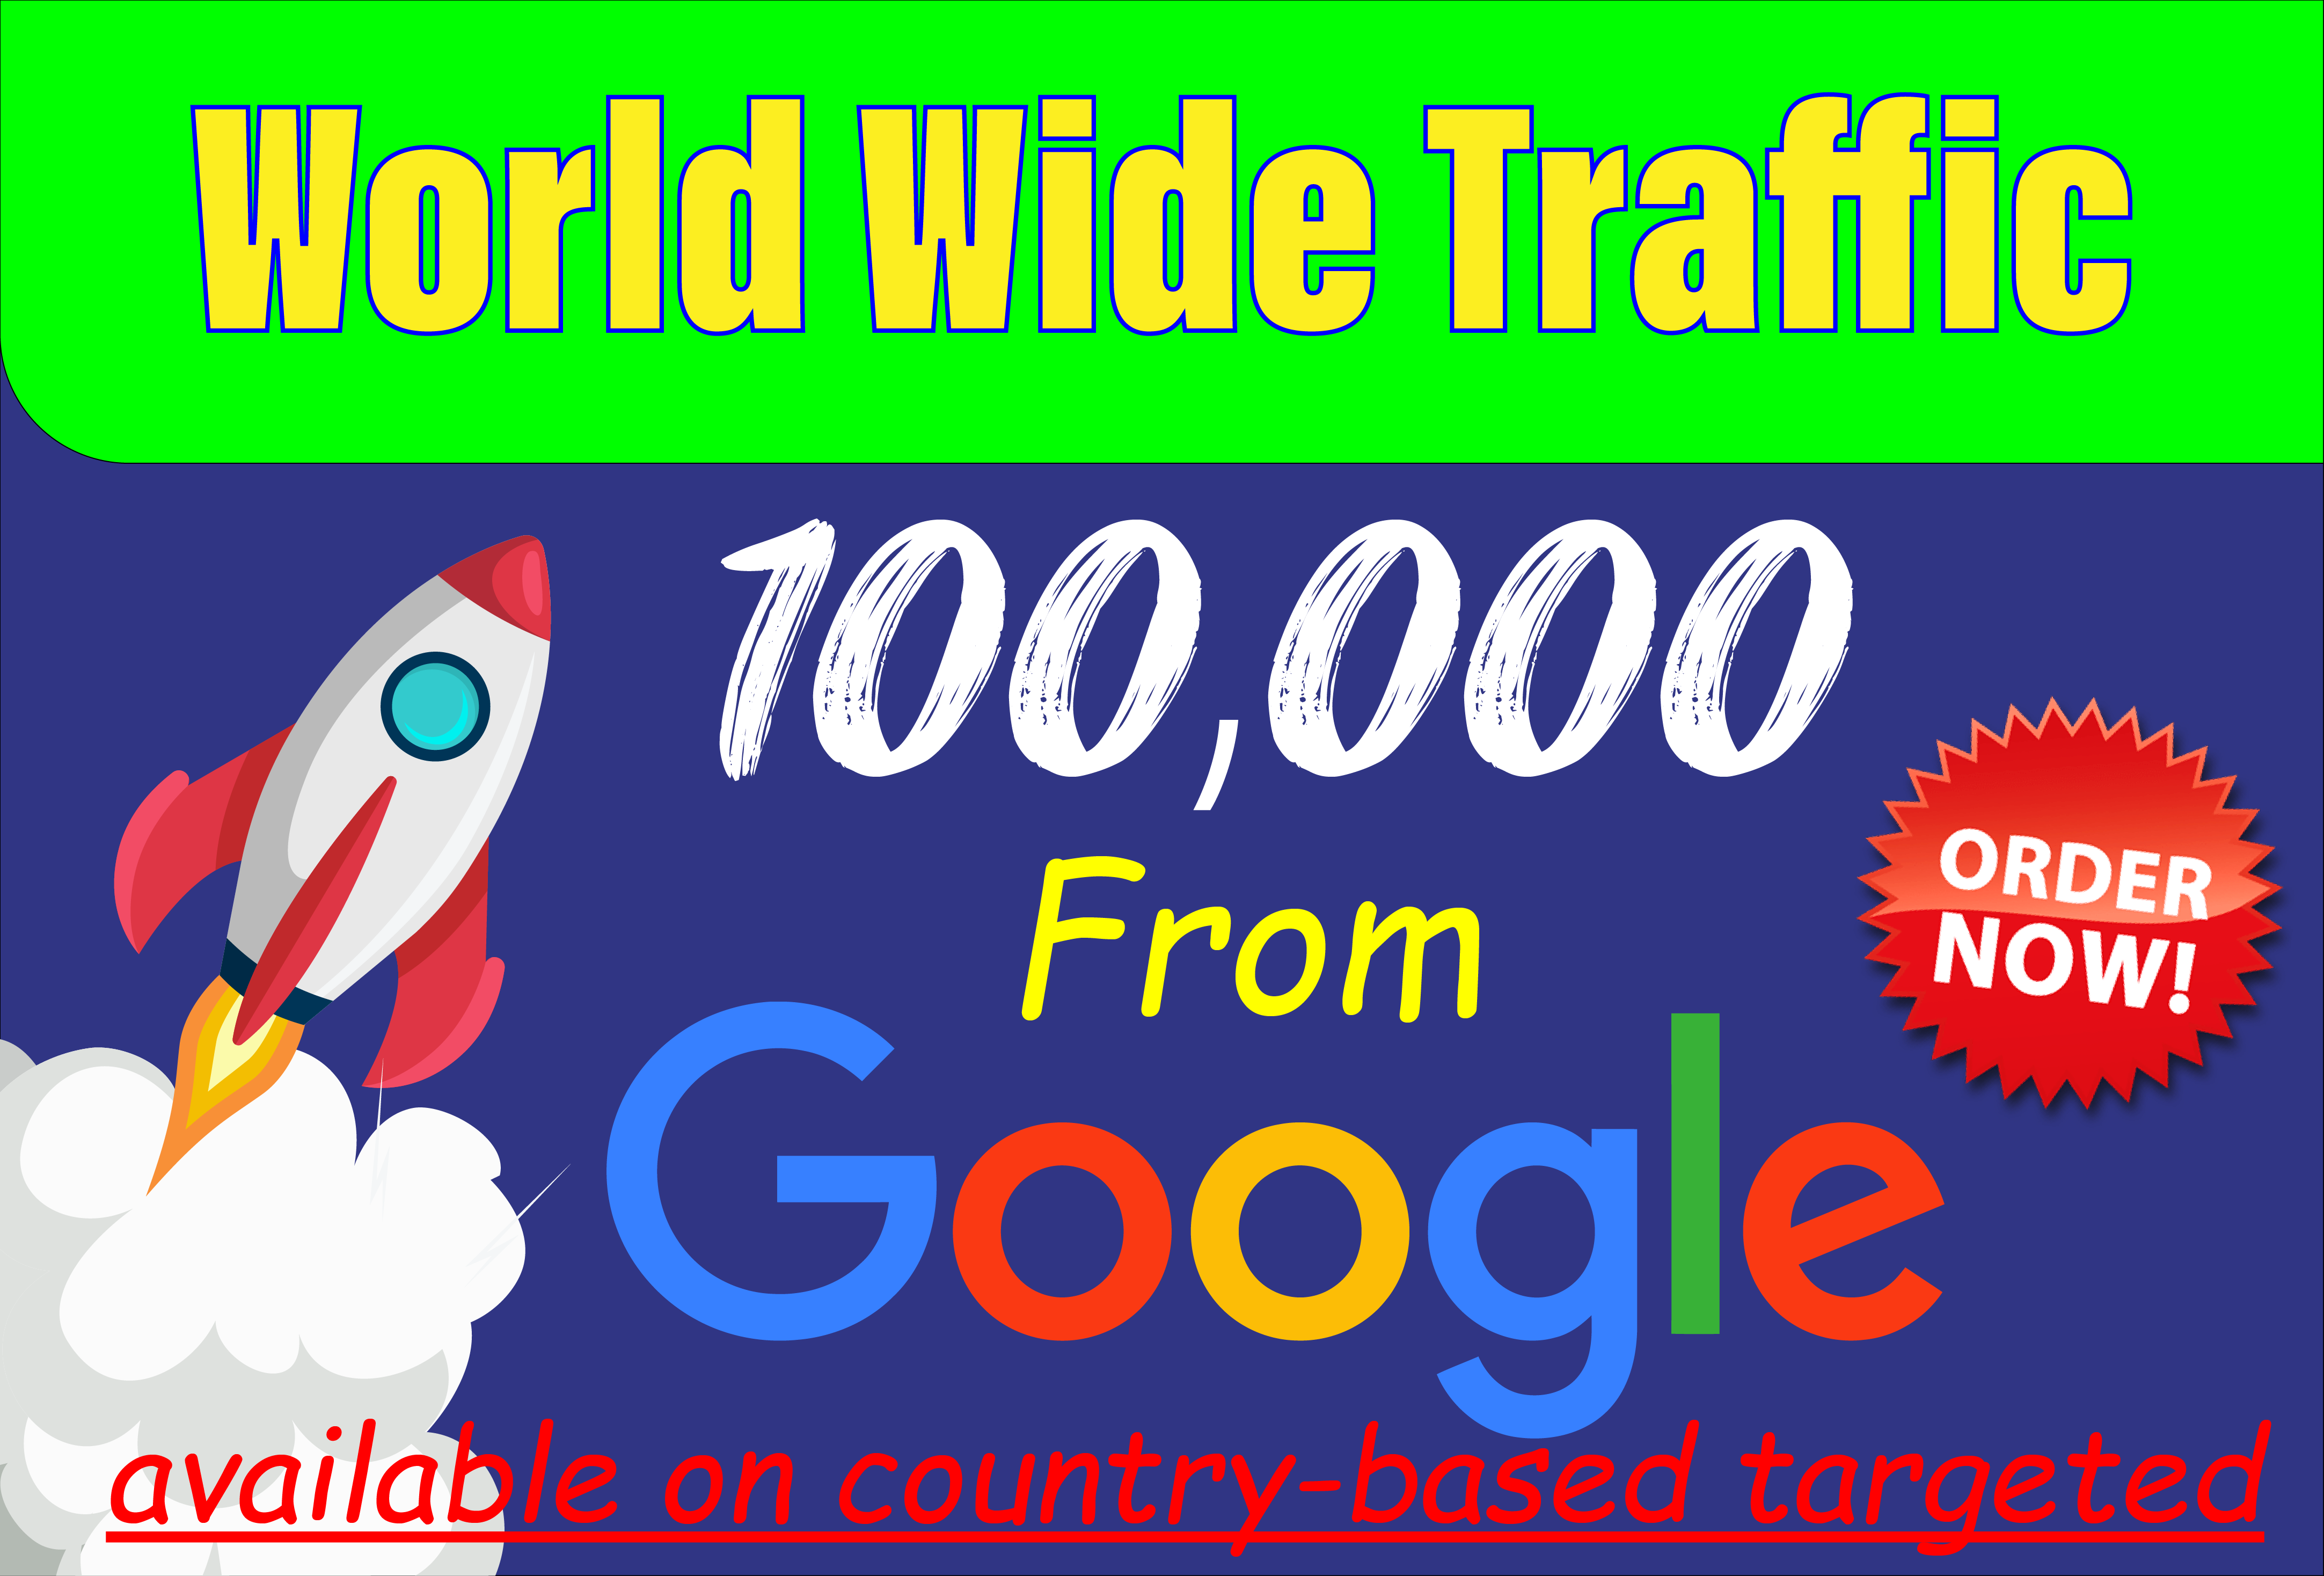 Boost High-quality Google website traffic to grow up your business